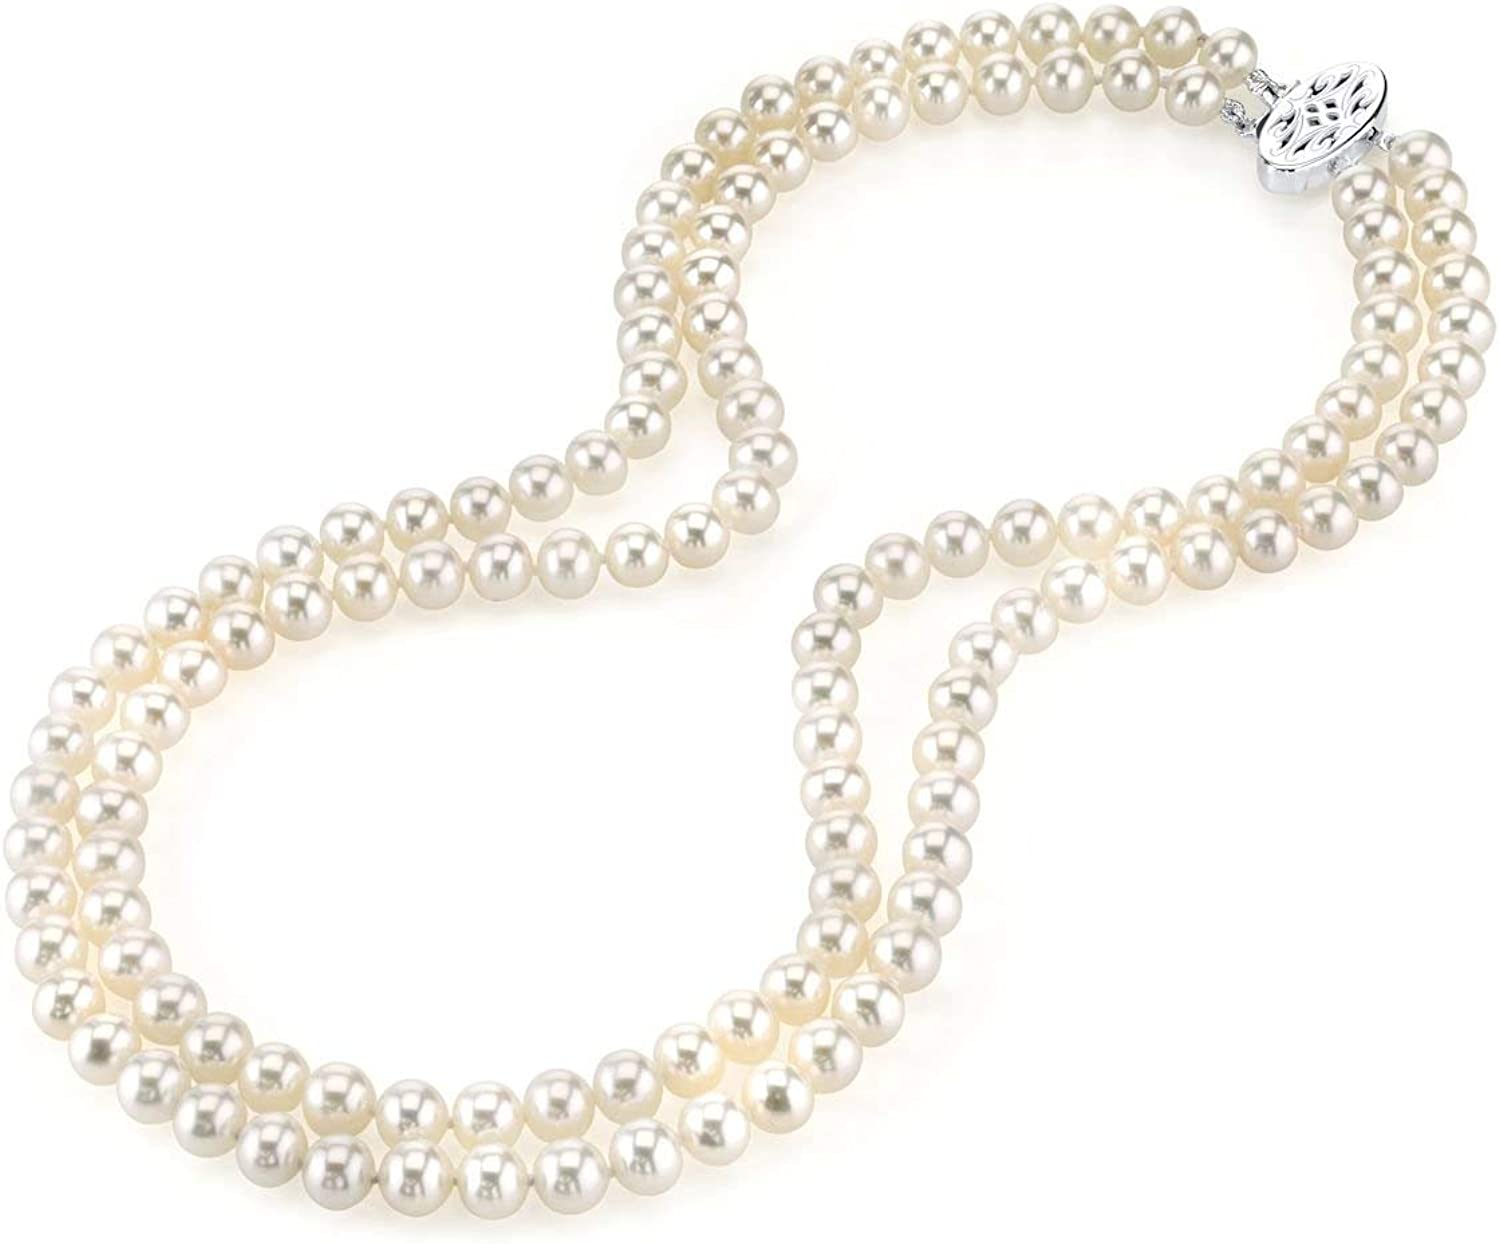 Double Popular shop is the lowest price challenge Classic Strand White Freshwater Cultured for Necklace Women Pearl